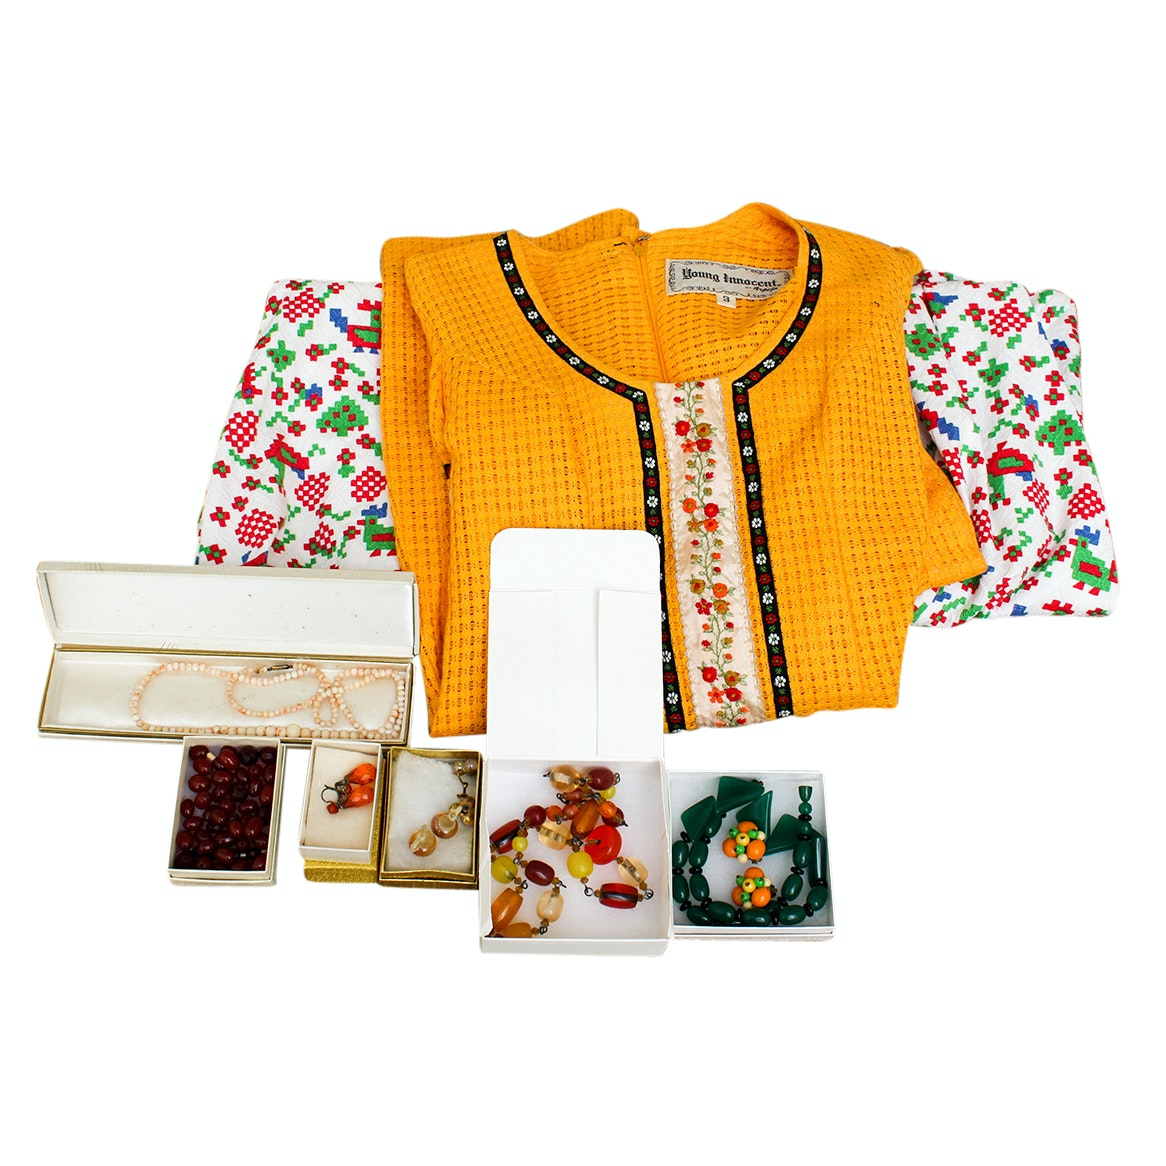 Vintage Clothing and Beaded Jewelry